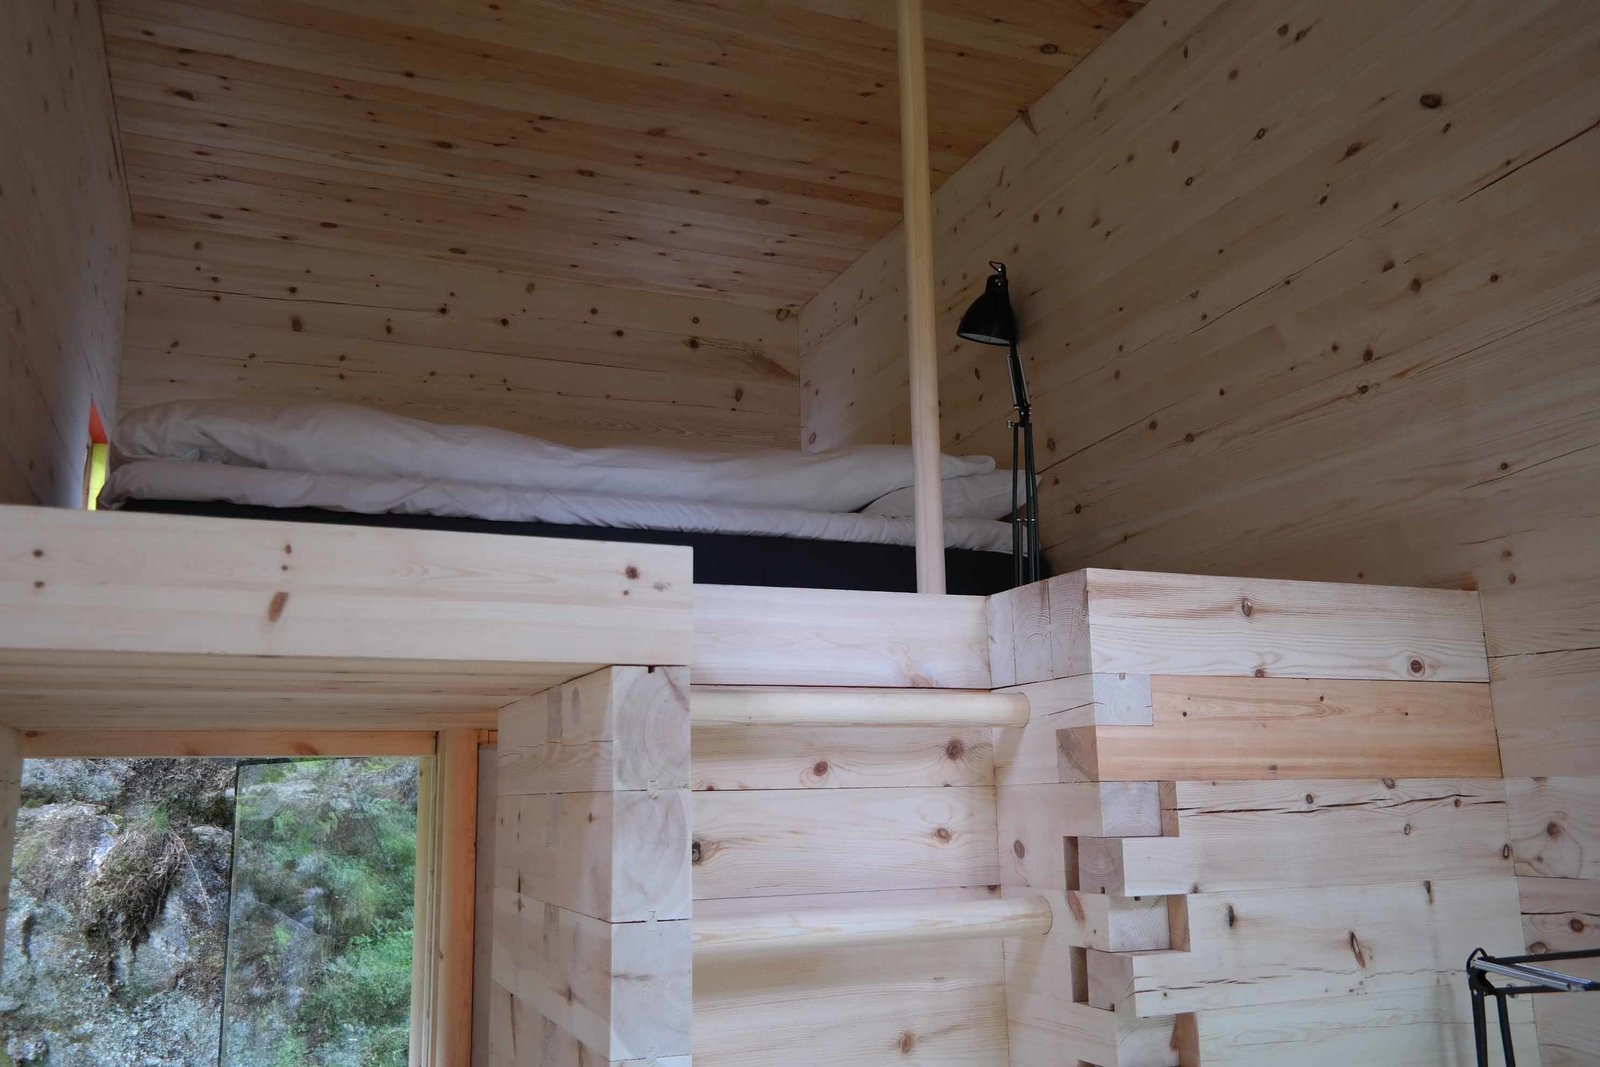 Bedroom, Bunks, Bed, Lamps, and Floor Lighting The new cabins' pine interiors have been left their natural shade. Furnishings are kept to the absolute minimum to keep guests' focus on what lies outside.  Photo 6 of 8 in Rustic Cabins Comprise This Impossibly Idyllic Hotel in Norway